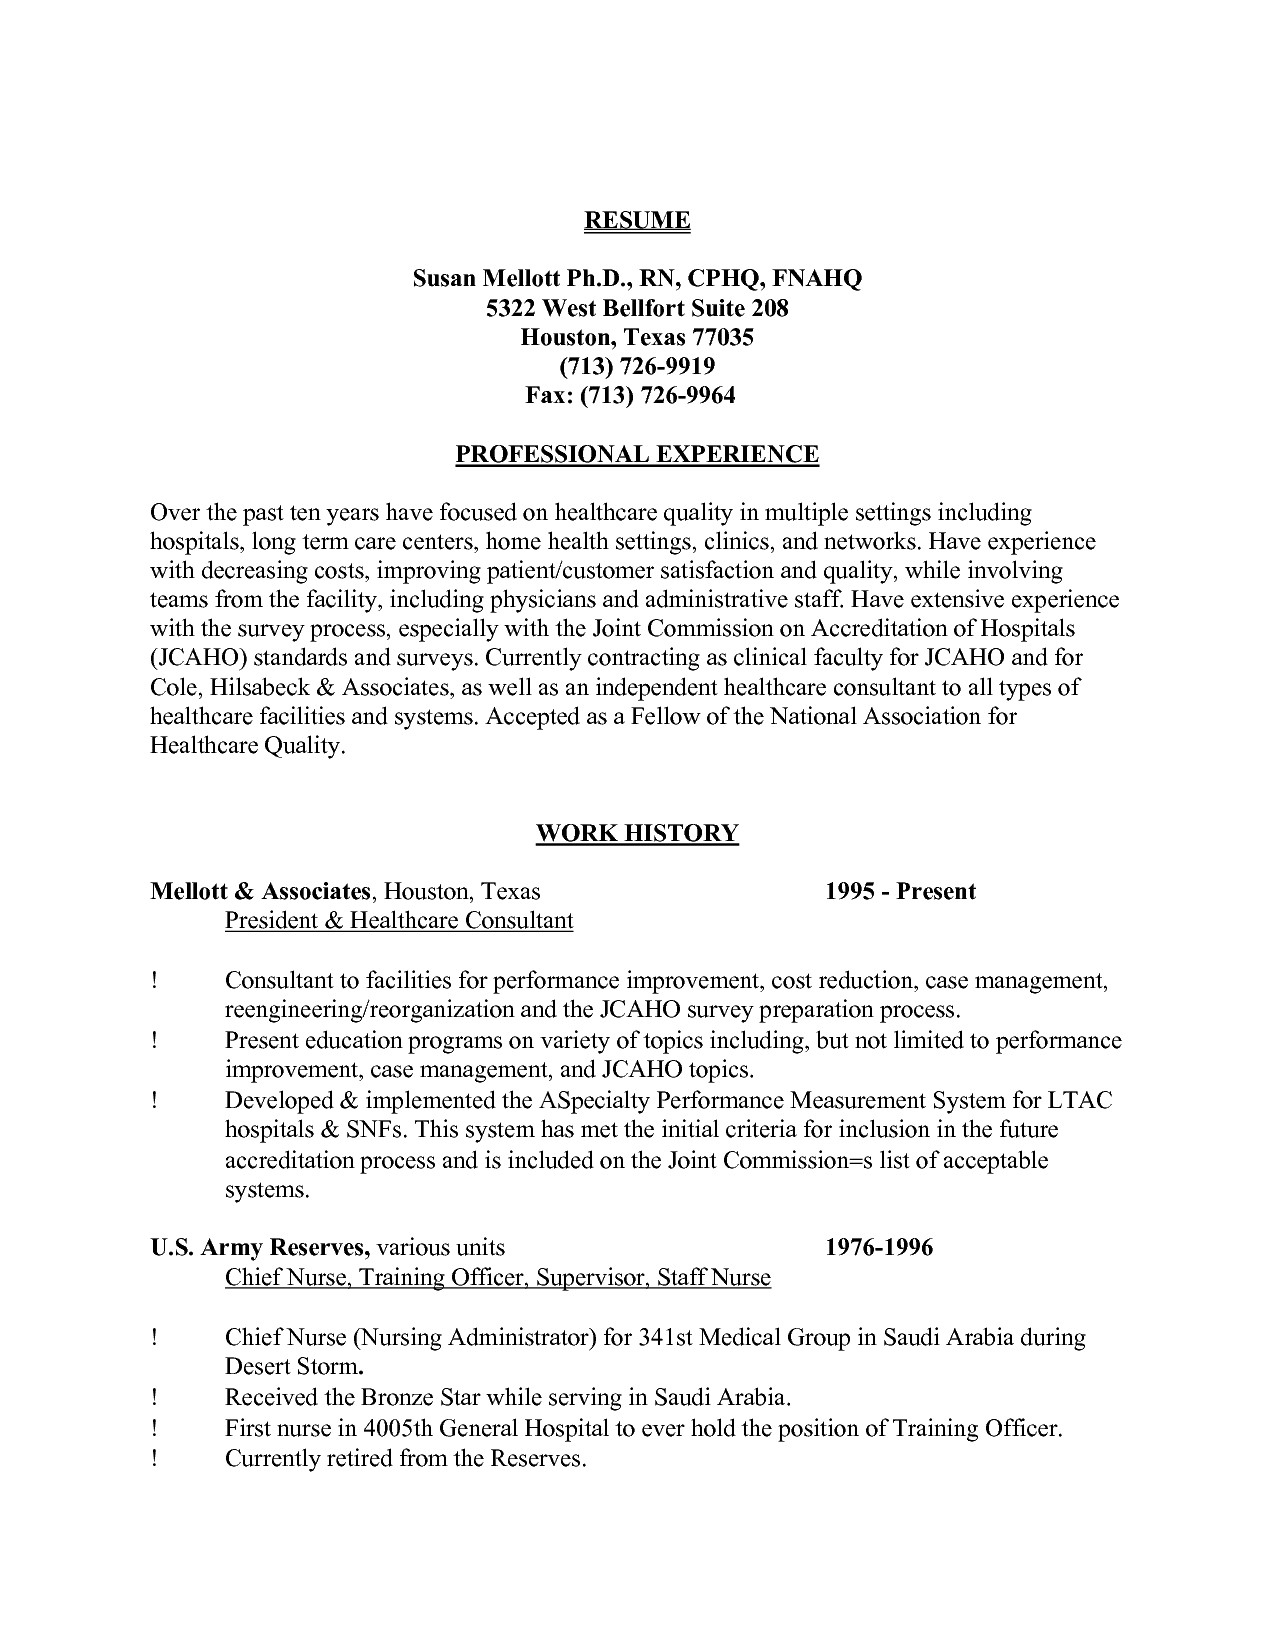 Letter Of Agreement Template Word - Star Resume Examples Termination Letter Template Fresh Separation